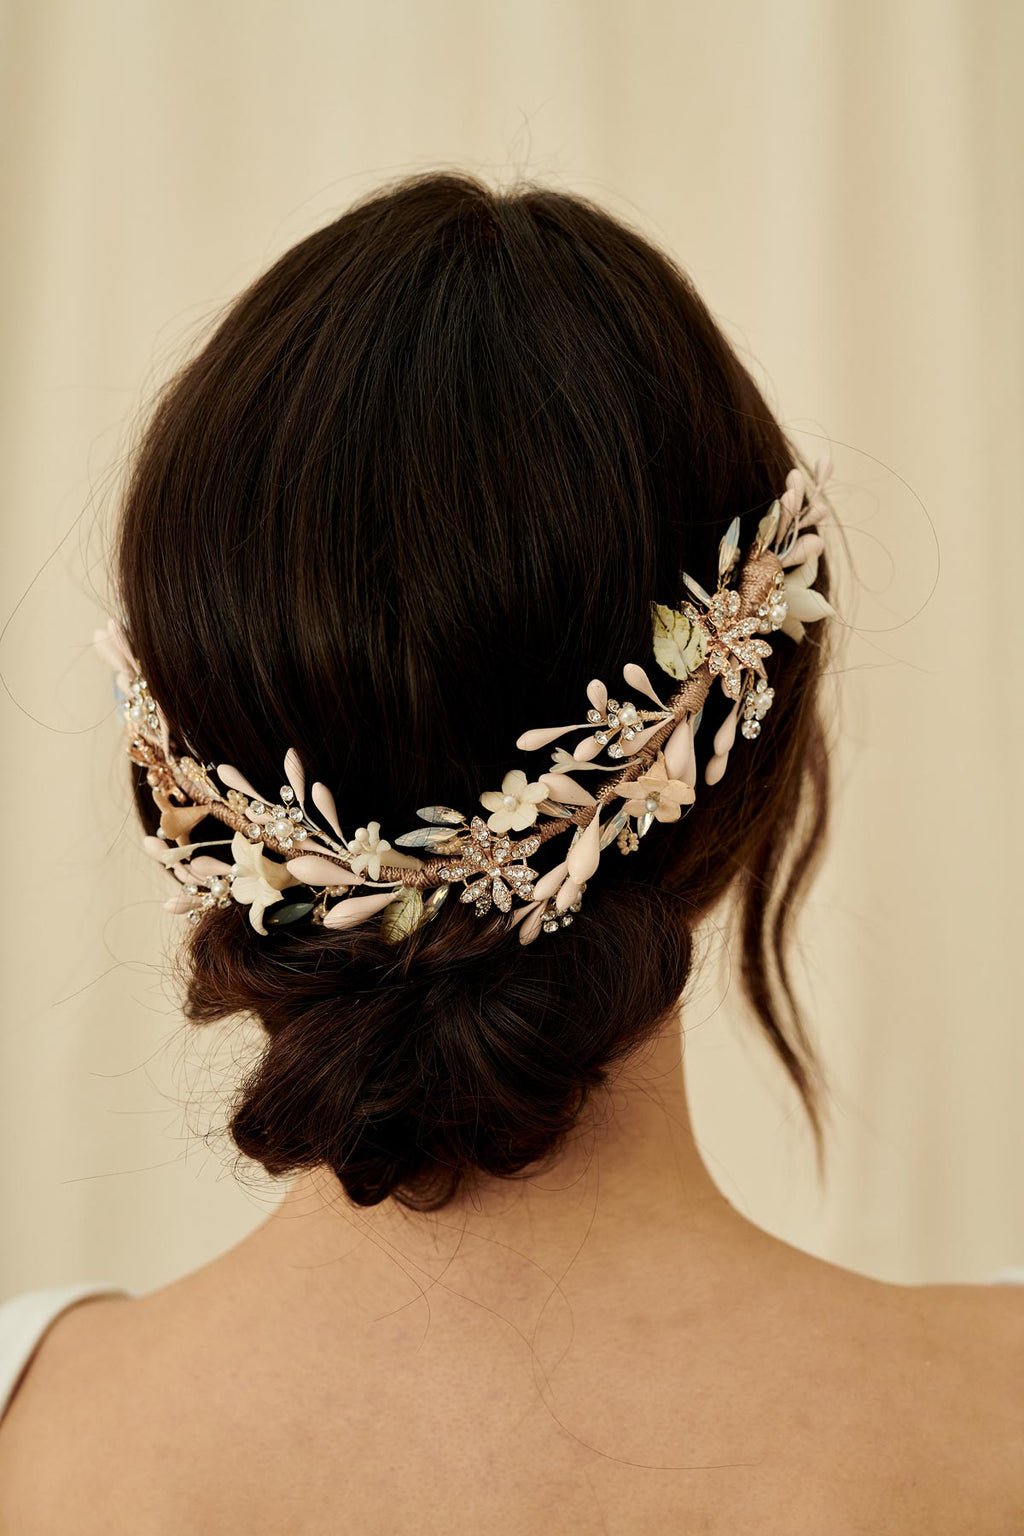 A statement bridal hair accessory featuring porcelain and wax flowers, crystals and opals, all wired onto a comb